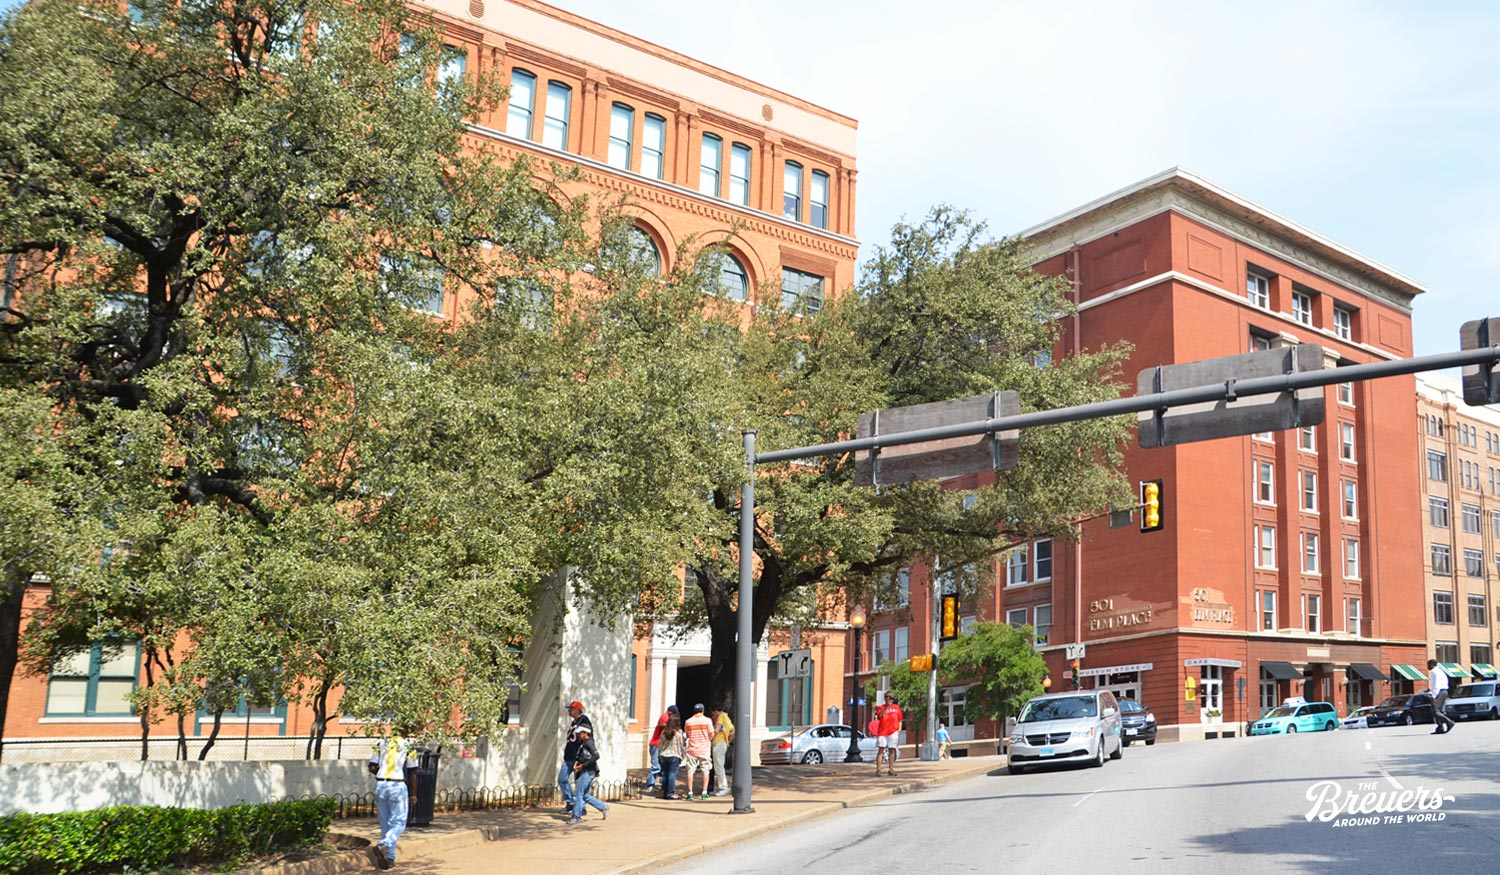 Texas School Book Depository am Dealey Plaza Dallas